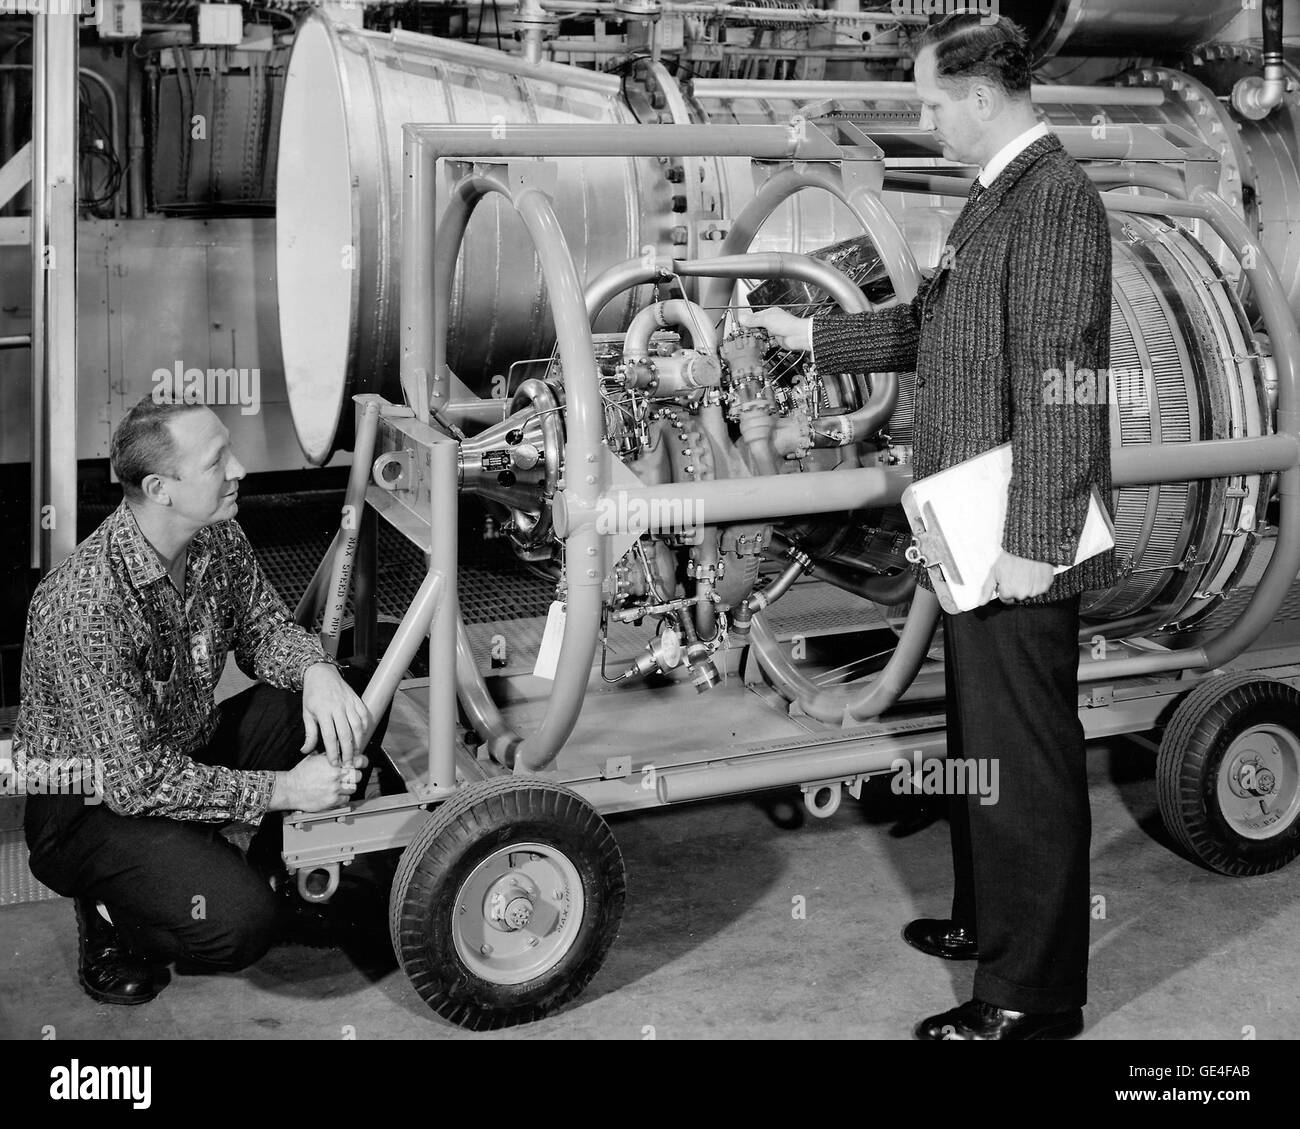 The Centaur upper stage rocket being developed in the 1960s at the Propulsion Systems Laboratory at Lewis Research - Stock Image